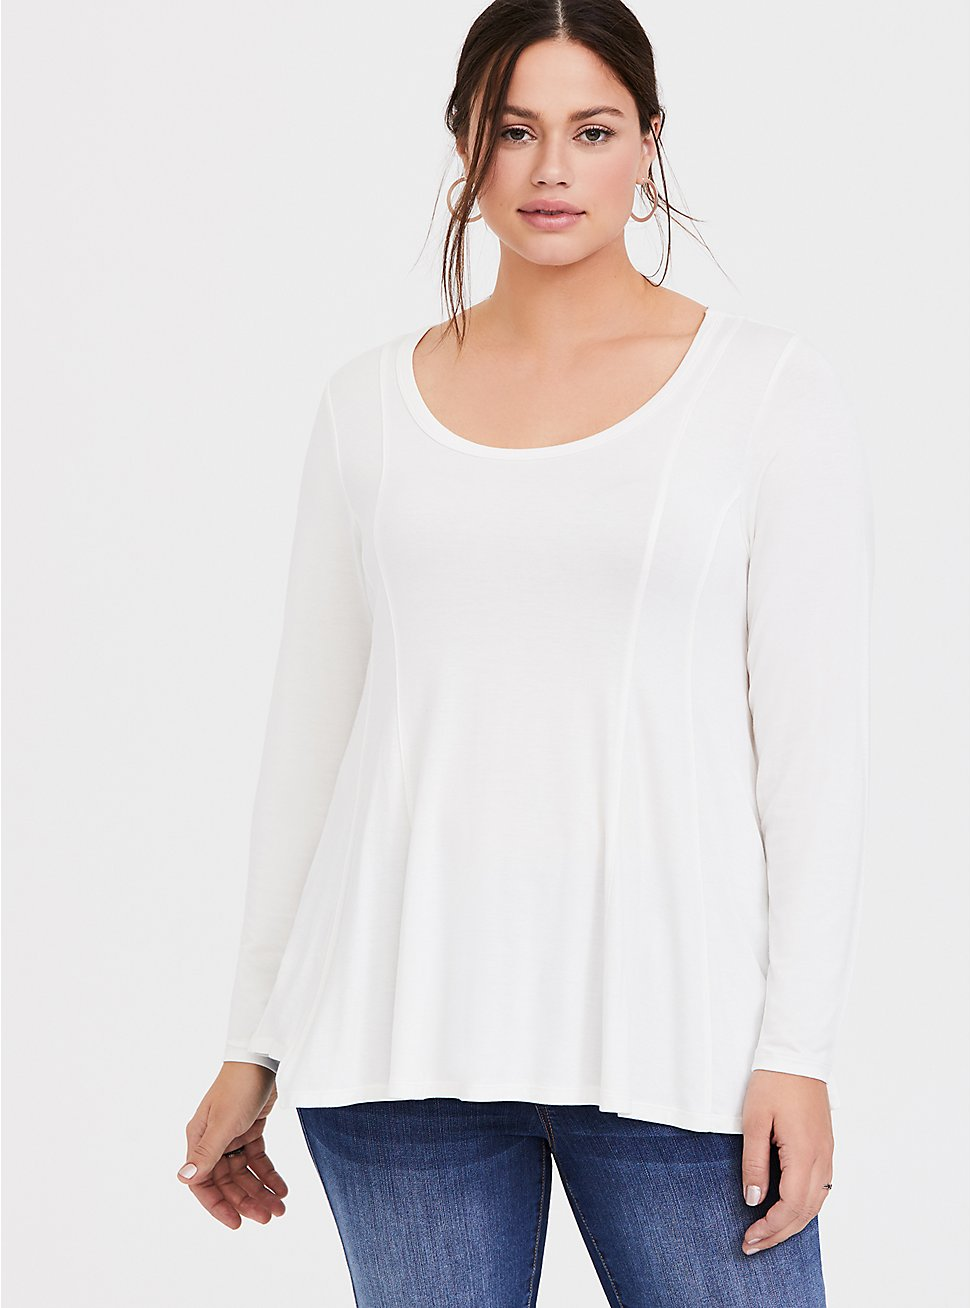 Super Soft White Fit & Flare Long Sleeve Tee, CLOUD DANCER, hi-res